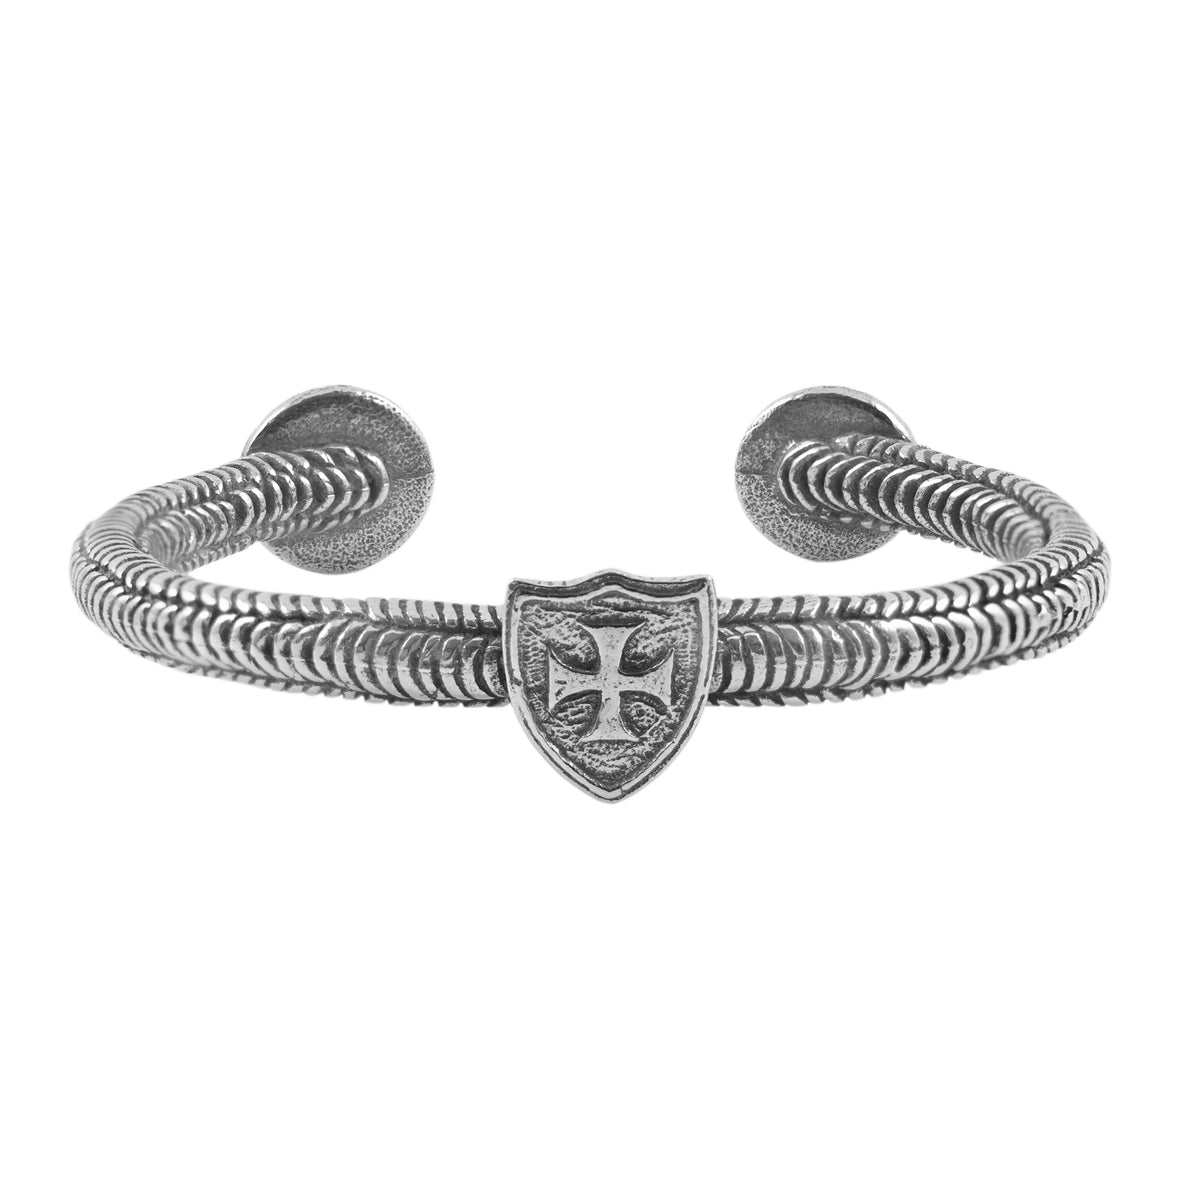 Knights Templar Pewter Crafted Bracelet Made in England